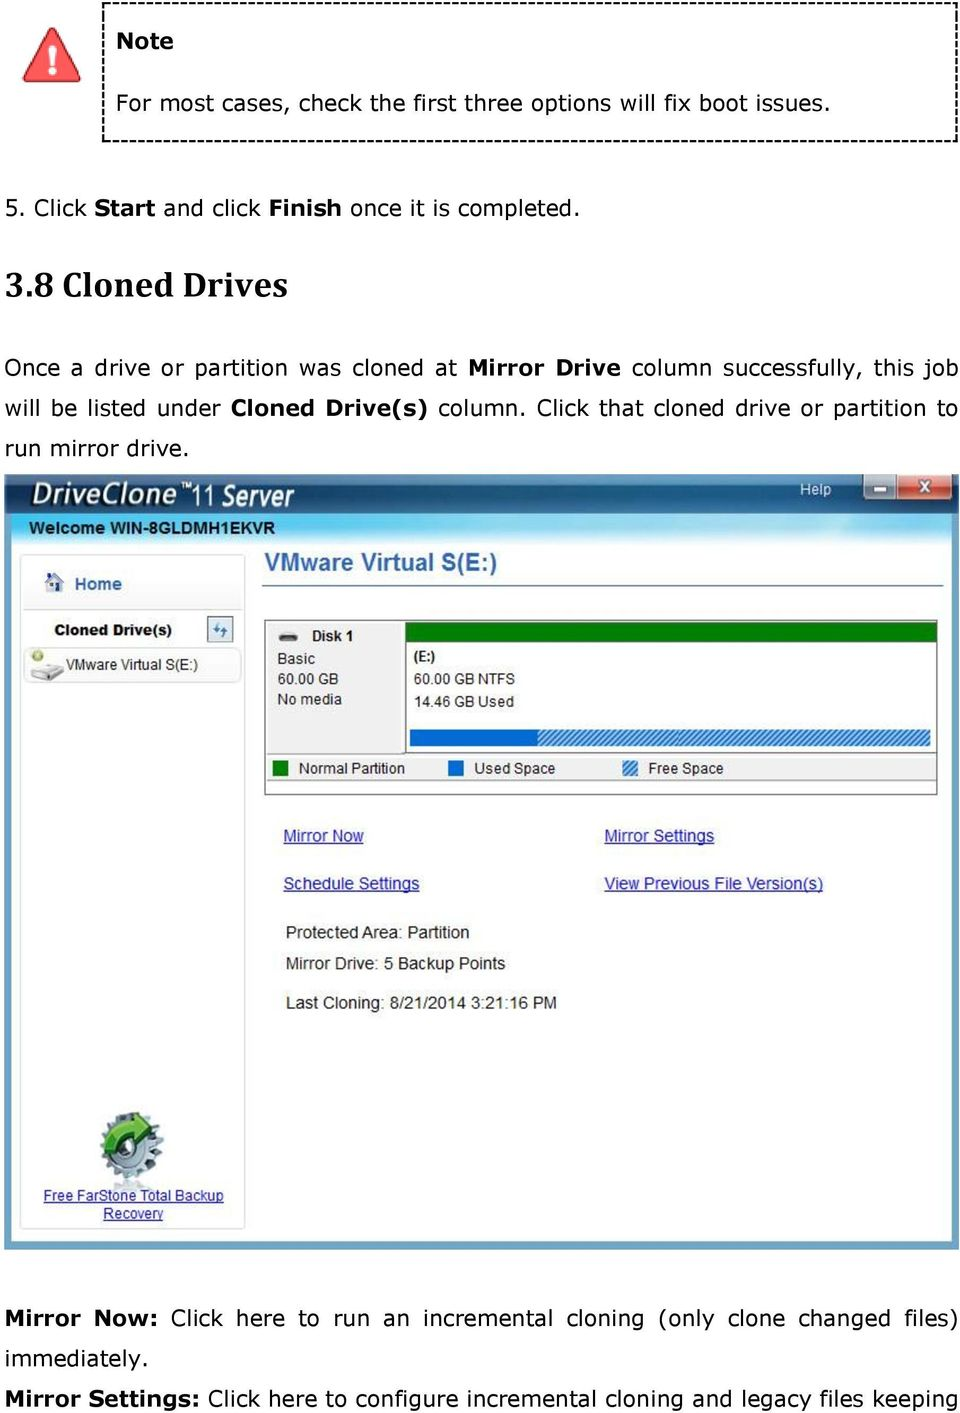 Cloned Drive(s) column. Click that cloned drive or partition to run mirror drive.